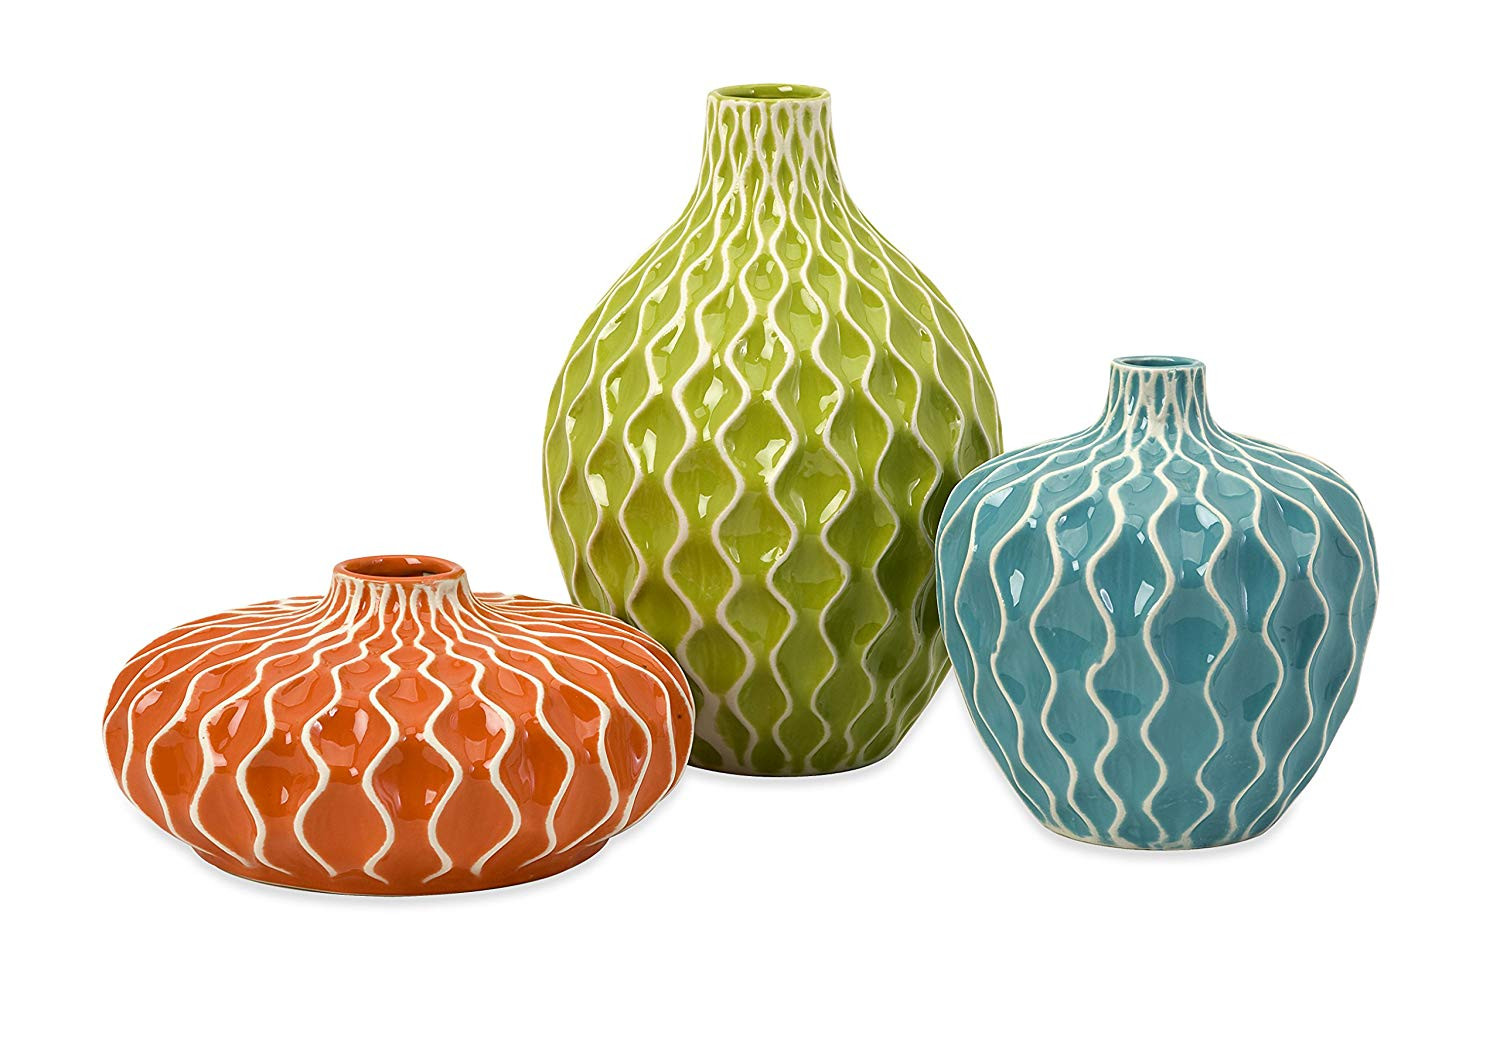 imax agatha ceramic vases set of 3 of amazon com imax 25016 3 agatha ceramic vases set of 3 decorative intended for amazon com imax 25016 3 agatha ceramic vases set of 3 decorative vases for flowers handcrafted vessels with wave surface texture design